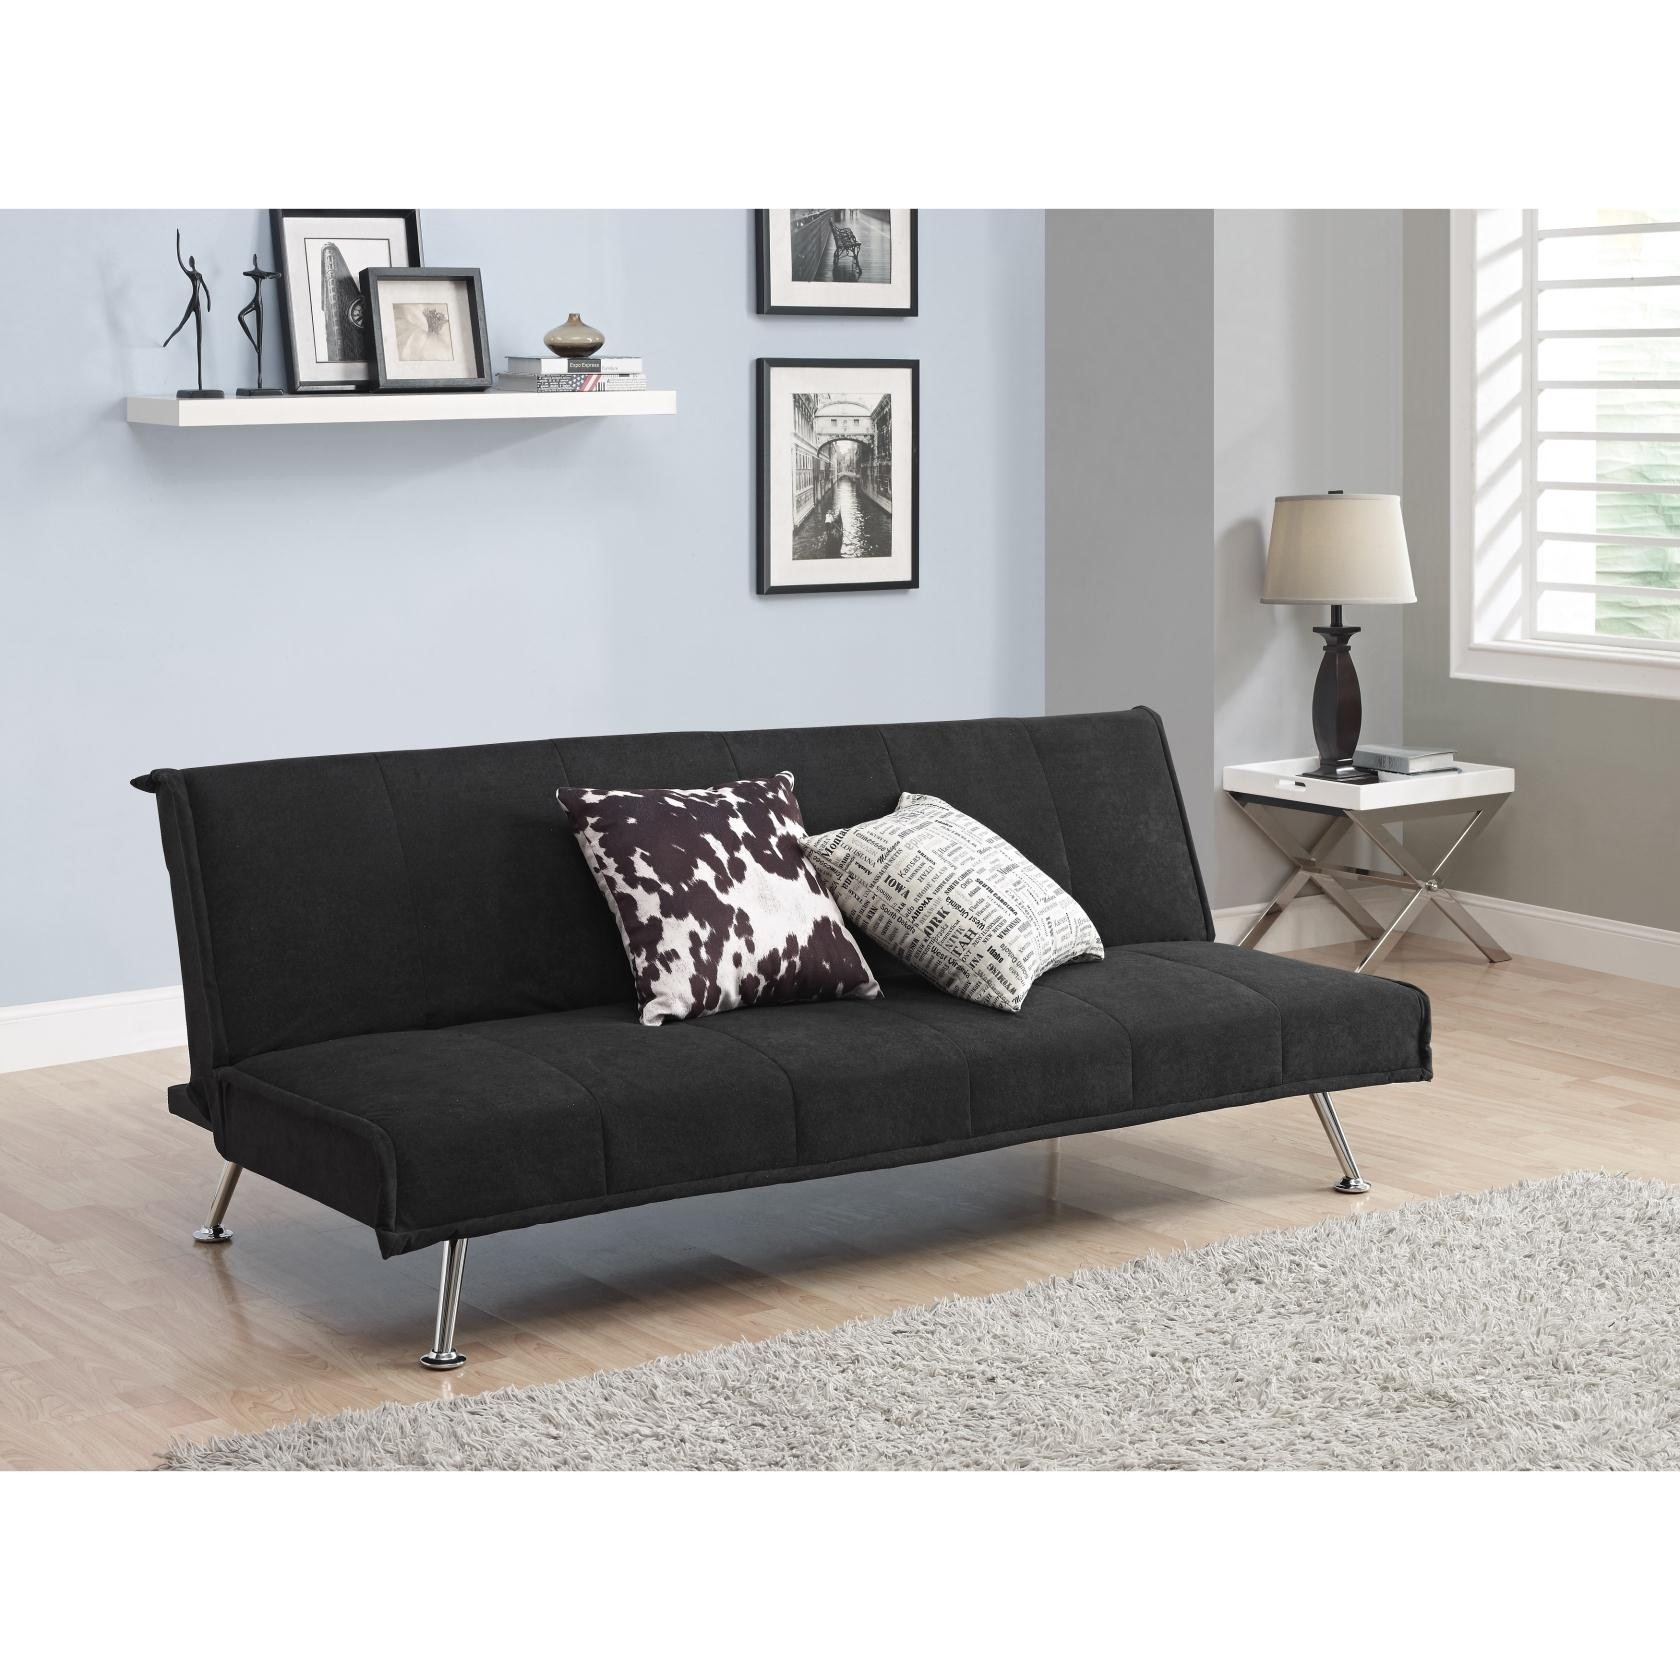 Medium image of walmart futons beds   futon big lots   walmart futon